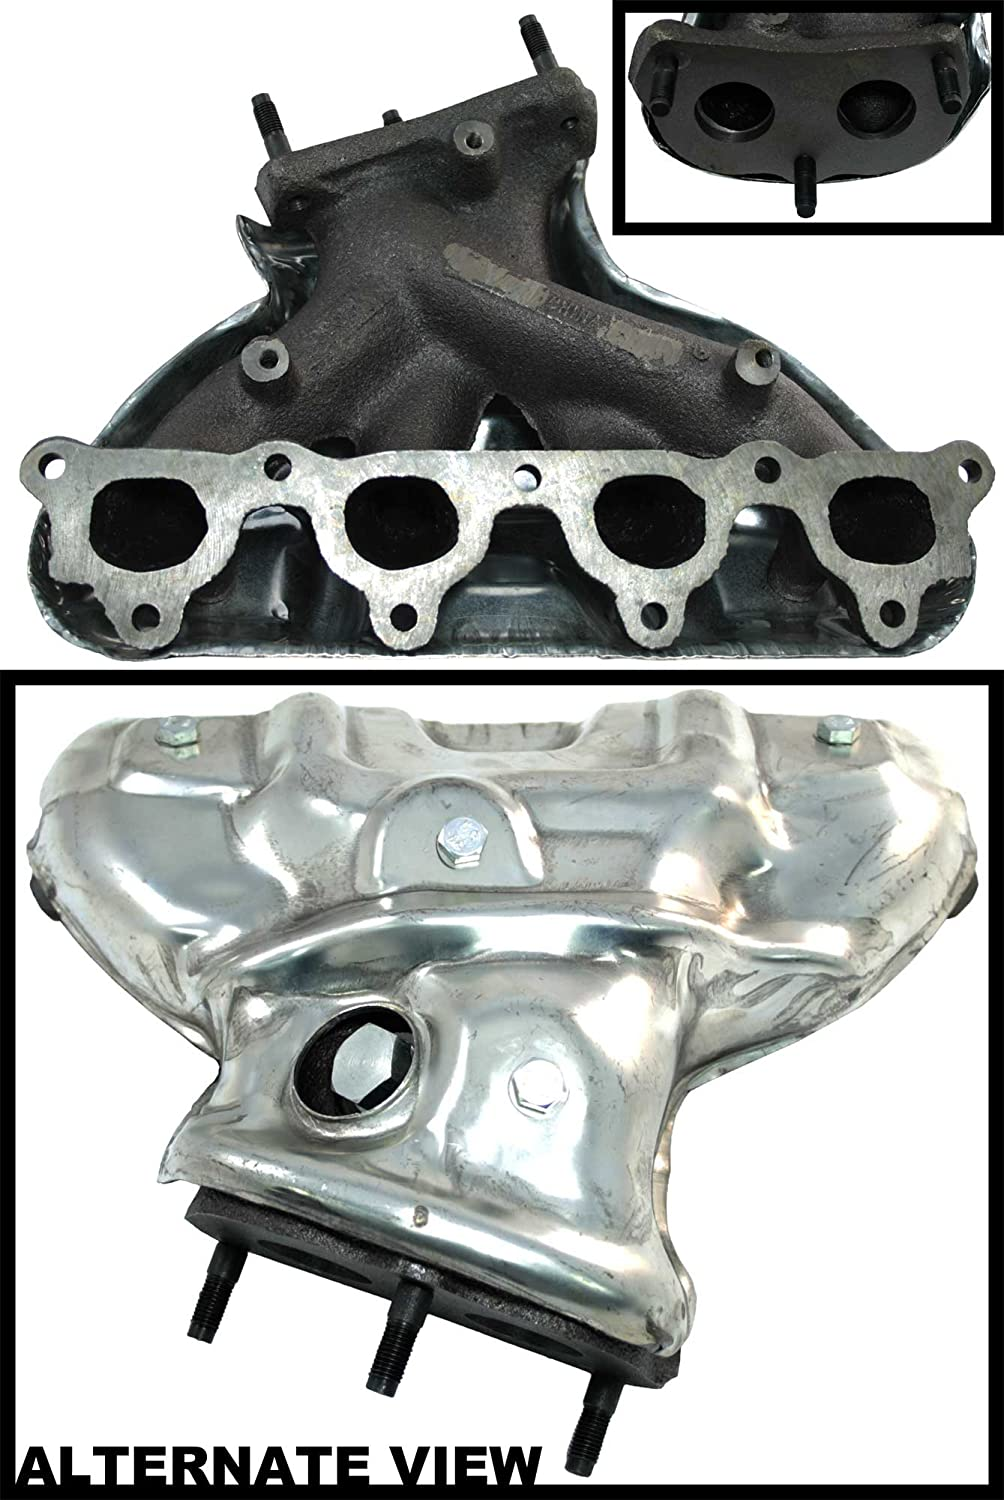 APDTY 18100-PEM-G00 Exhaust Manifold Assembly With Heat Shield For 1992-1998 Honda Civic 1.6L EX or SI / 1993-1997 Civic Del Sol 1.6 Liter Engine